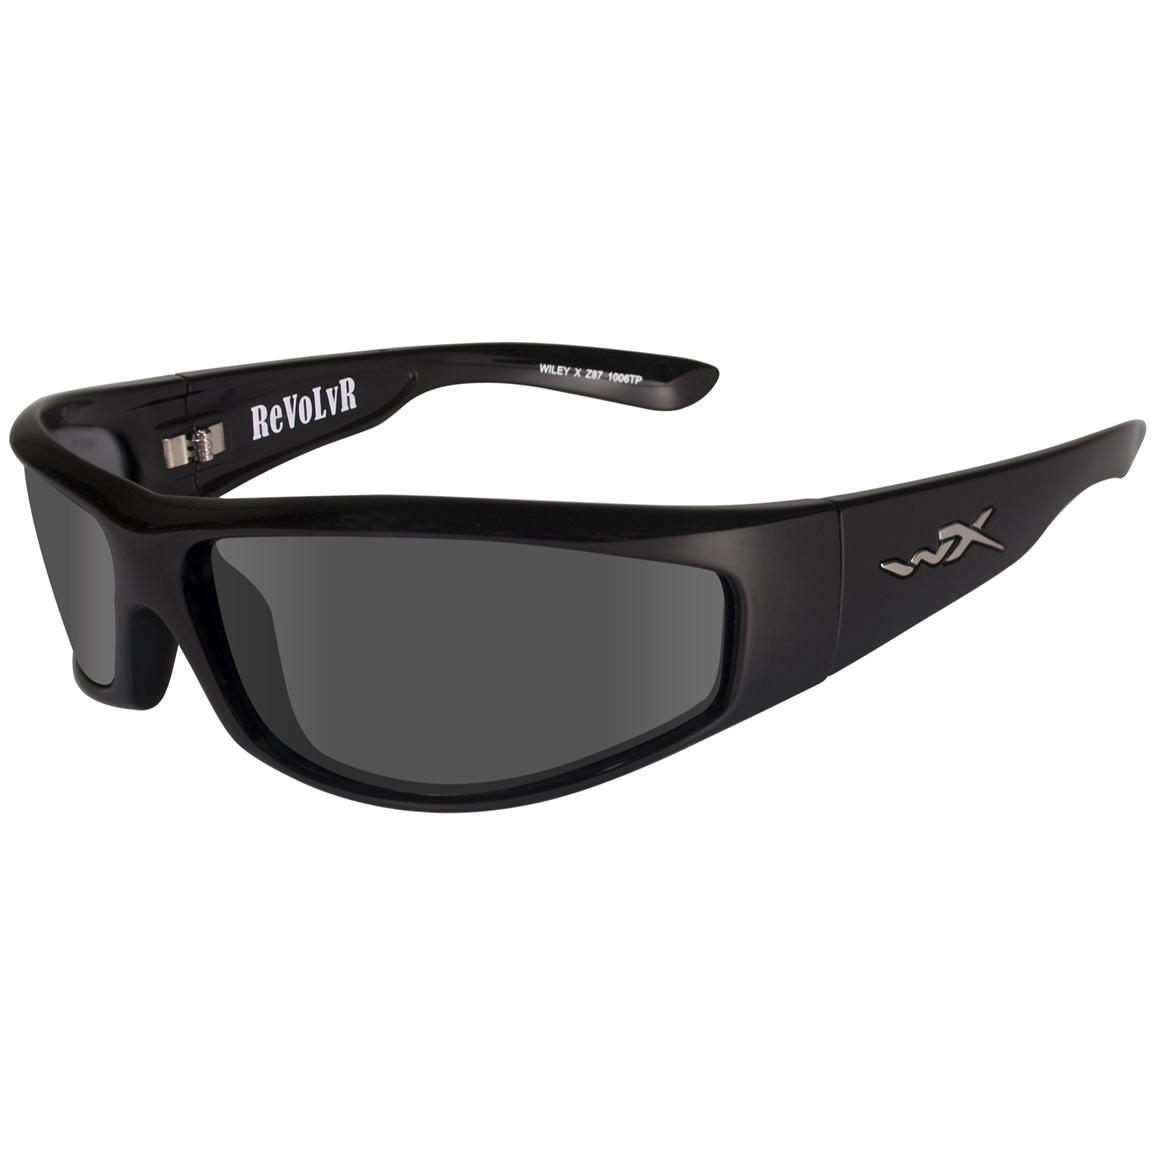 Wiley X™ Revolvr Street Series Sunglasses